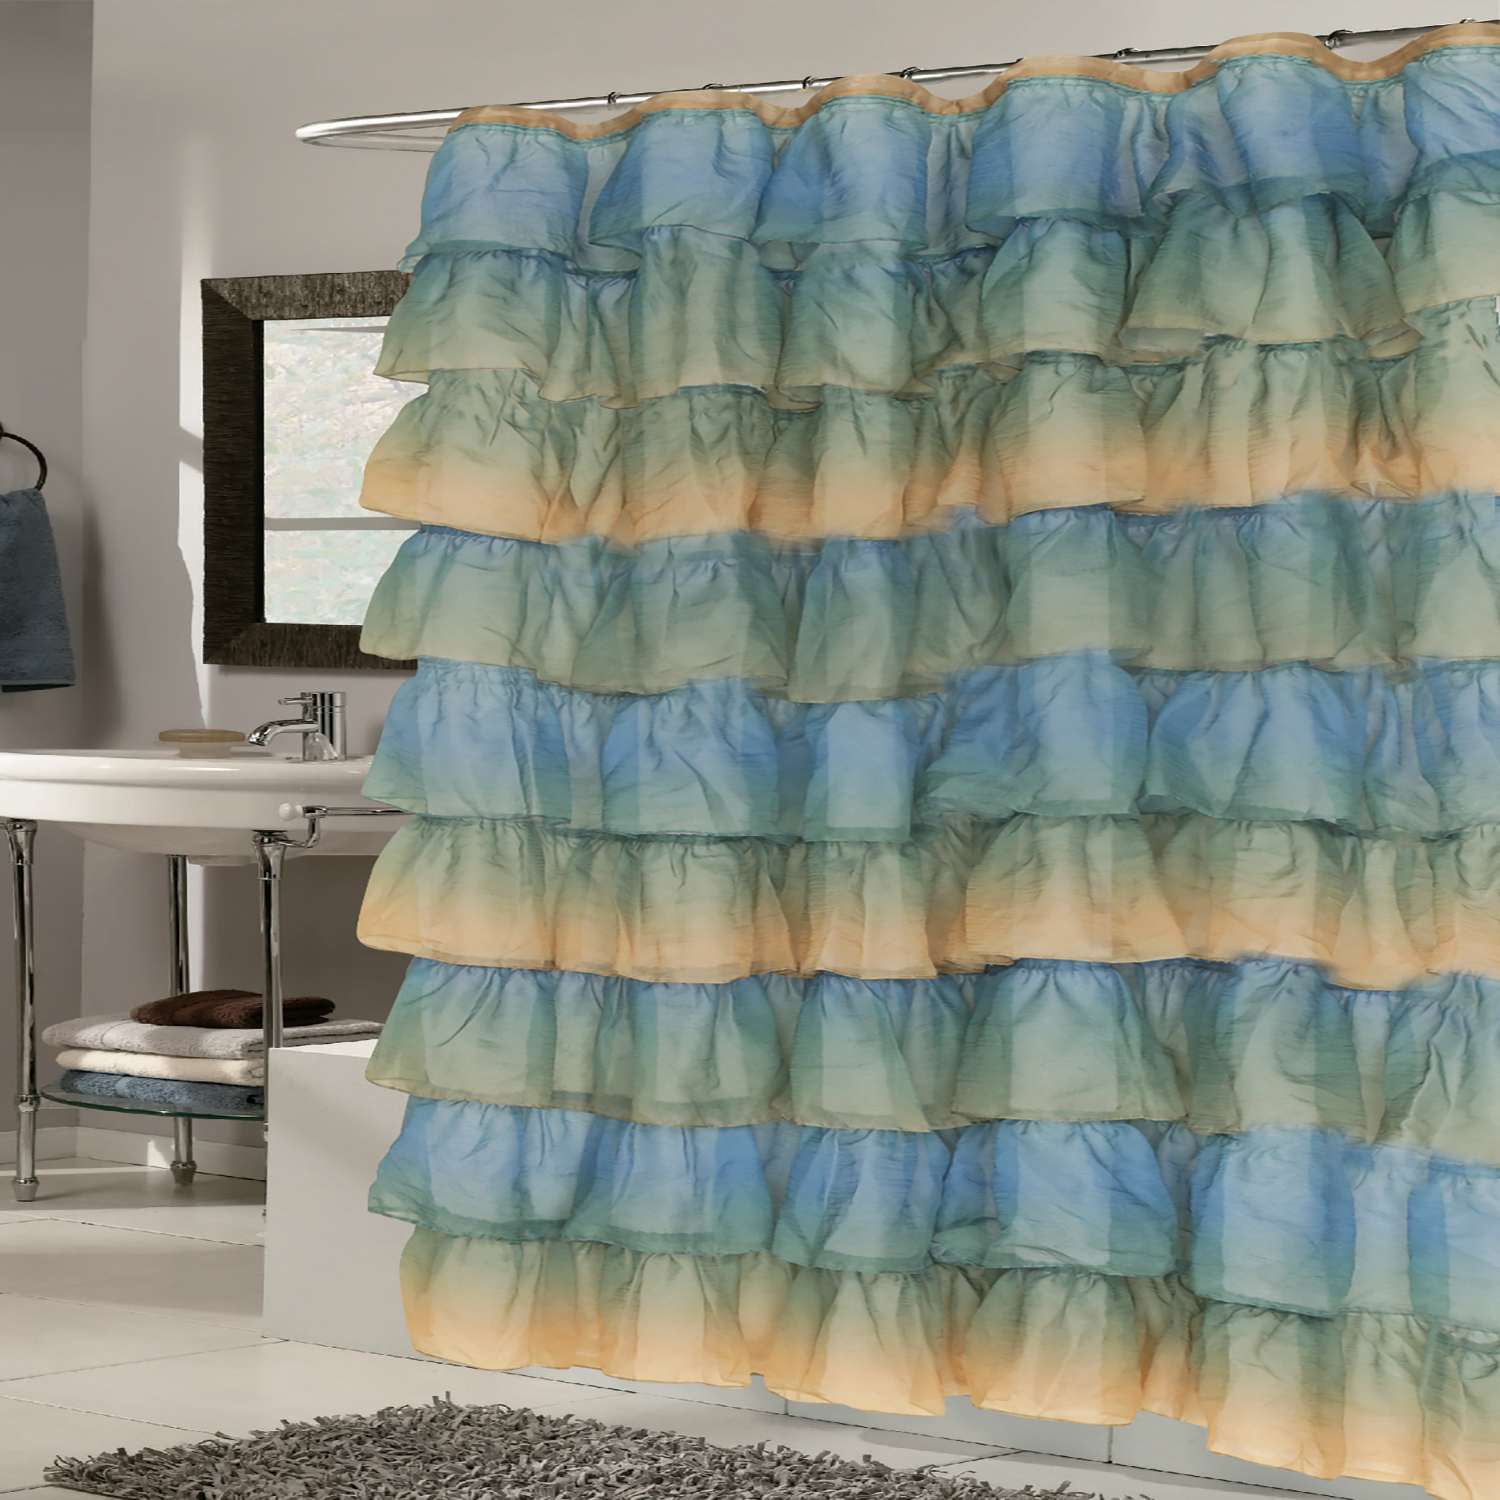 """Details About Elegant Umber Crushed Voile Ruffled Tier Shower Curtain 70"""" X 72"""" Within Elegant Crushed Voile Ruffle Window Curtain Pieces (View 18 of 20)"""